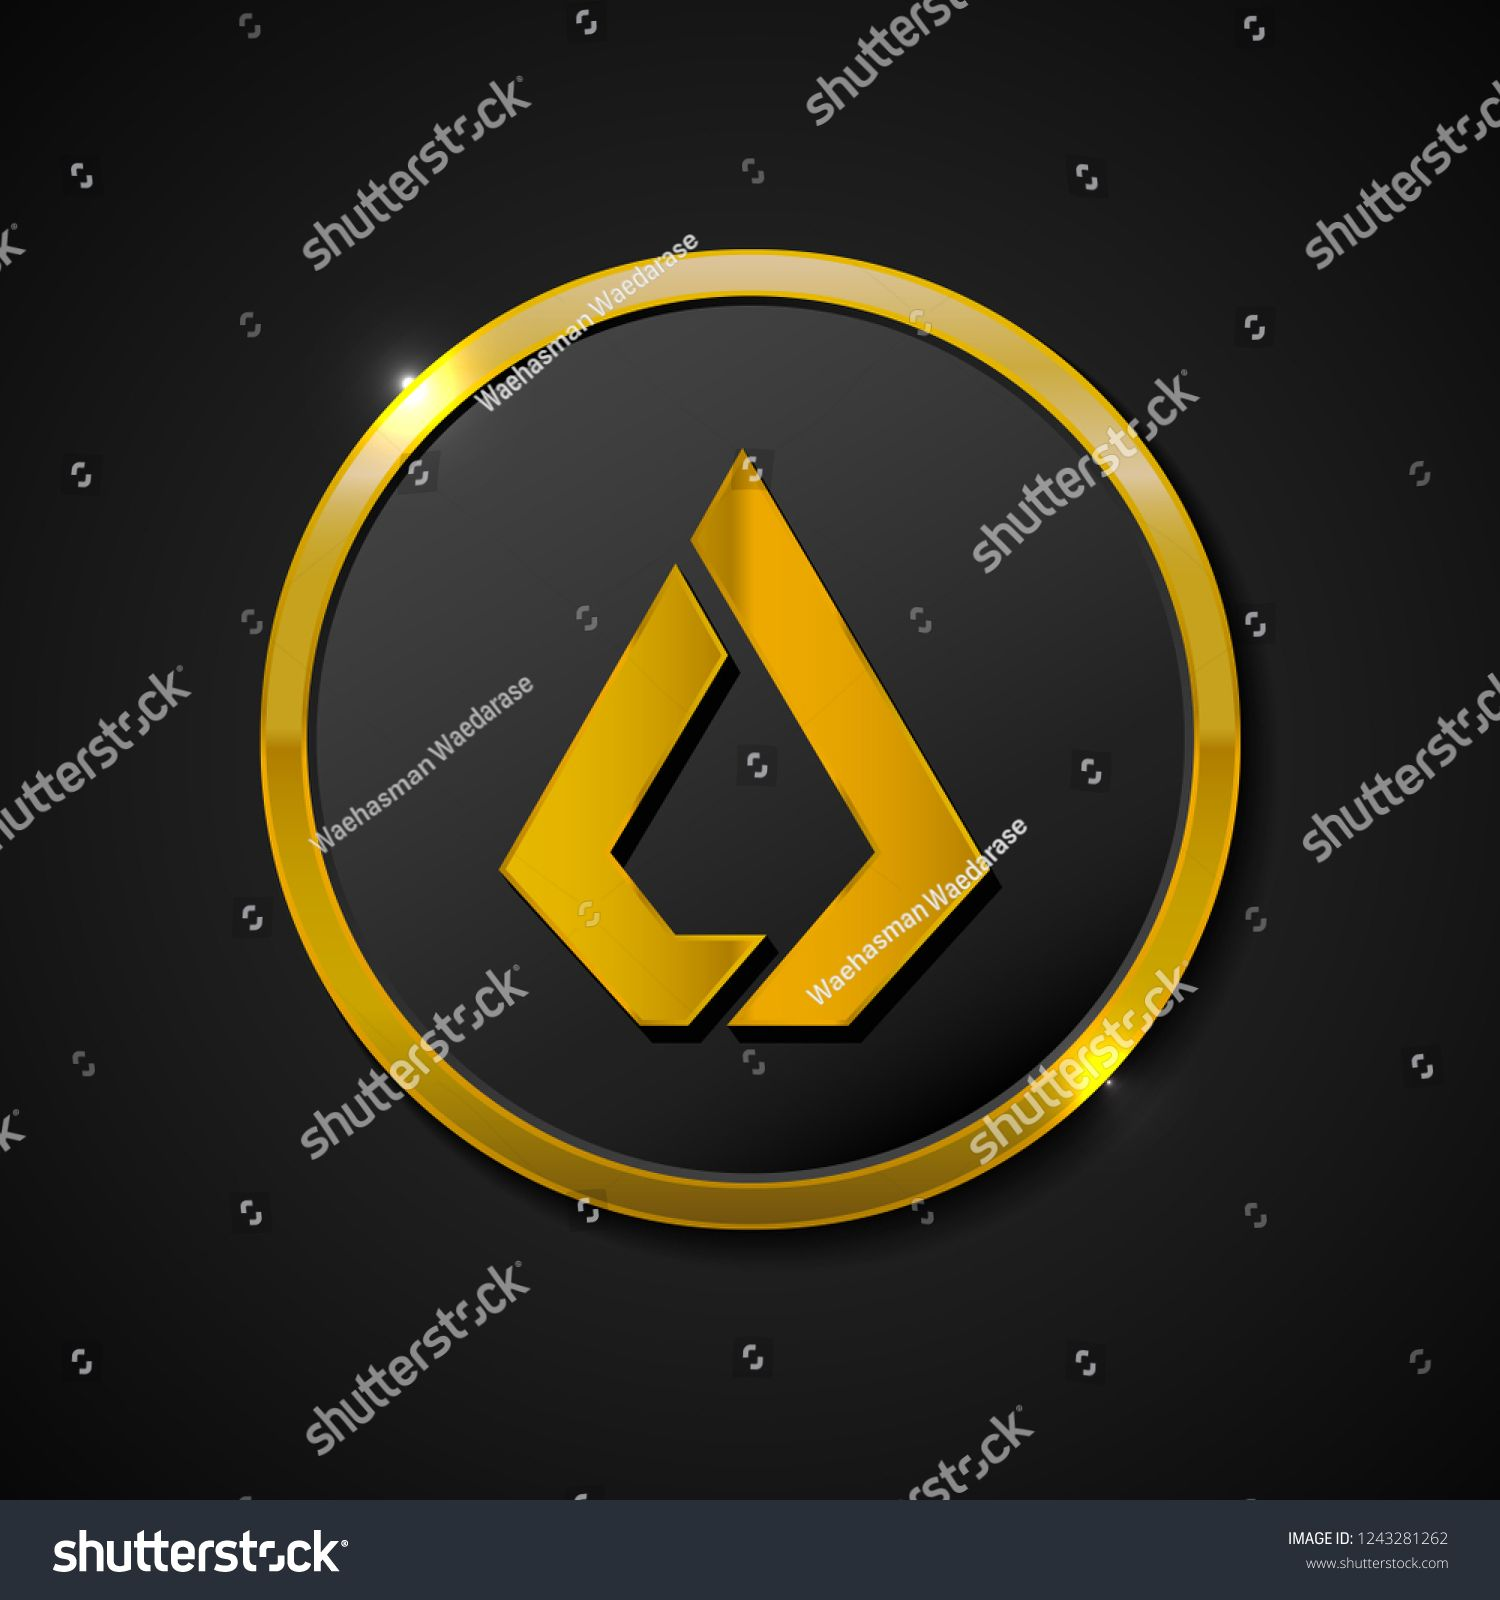 3d realistic gold coin icon  Digital currency  Crypto